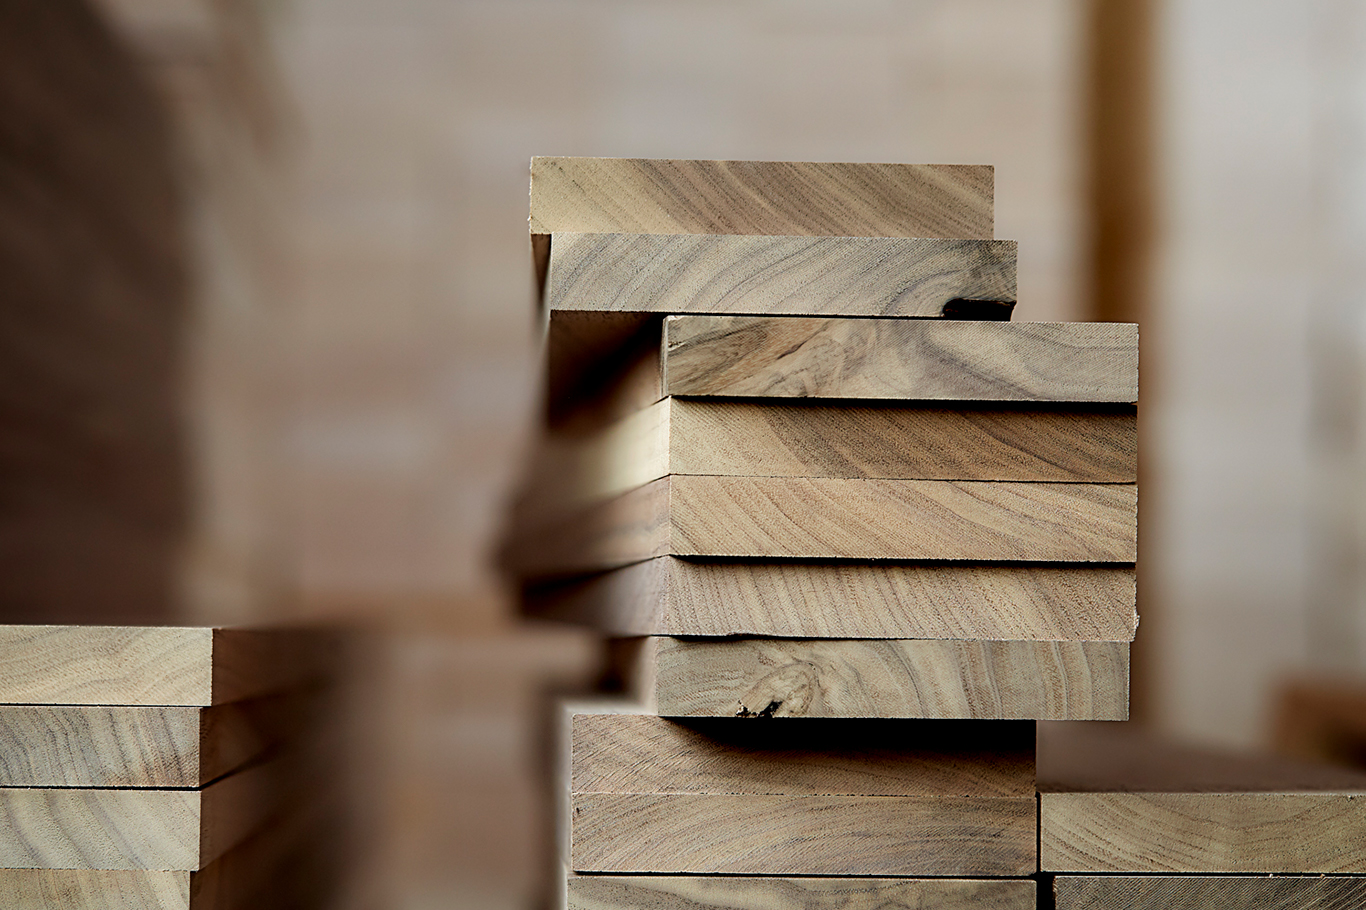 Solid wood and joinery crafts are deep in the DNA of Multiform